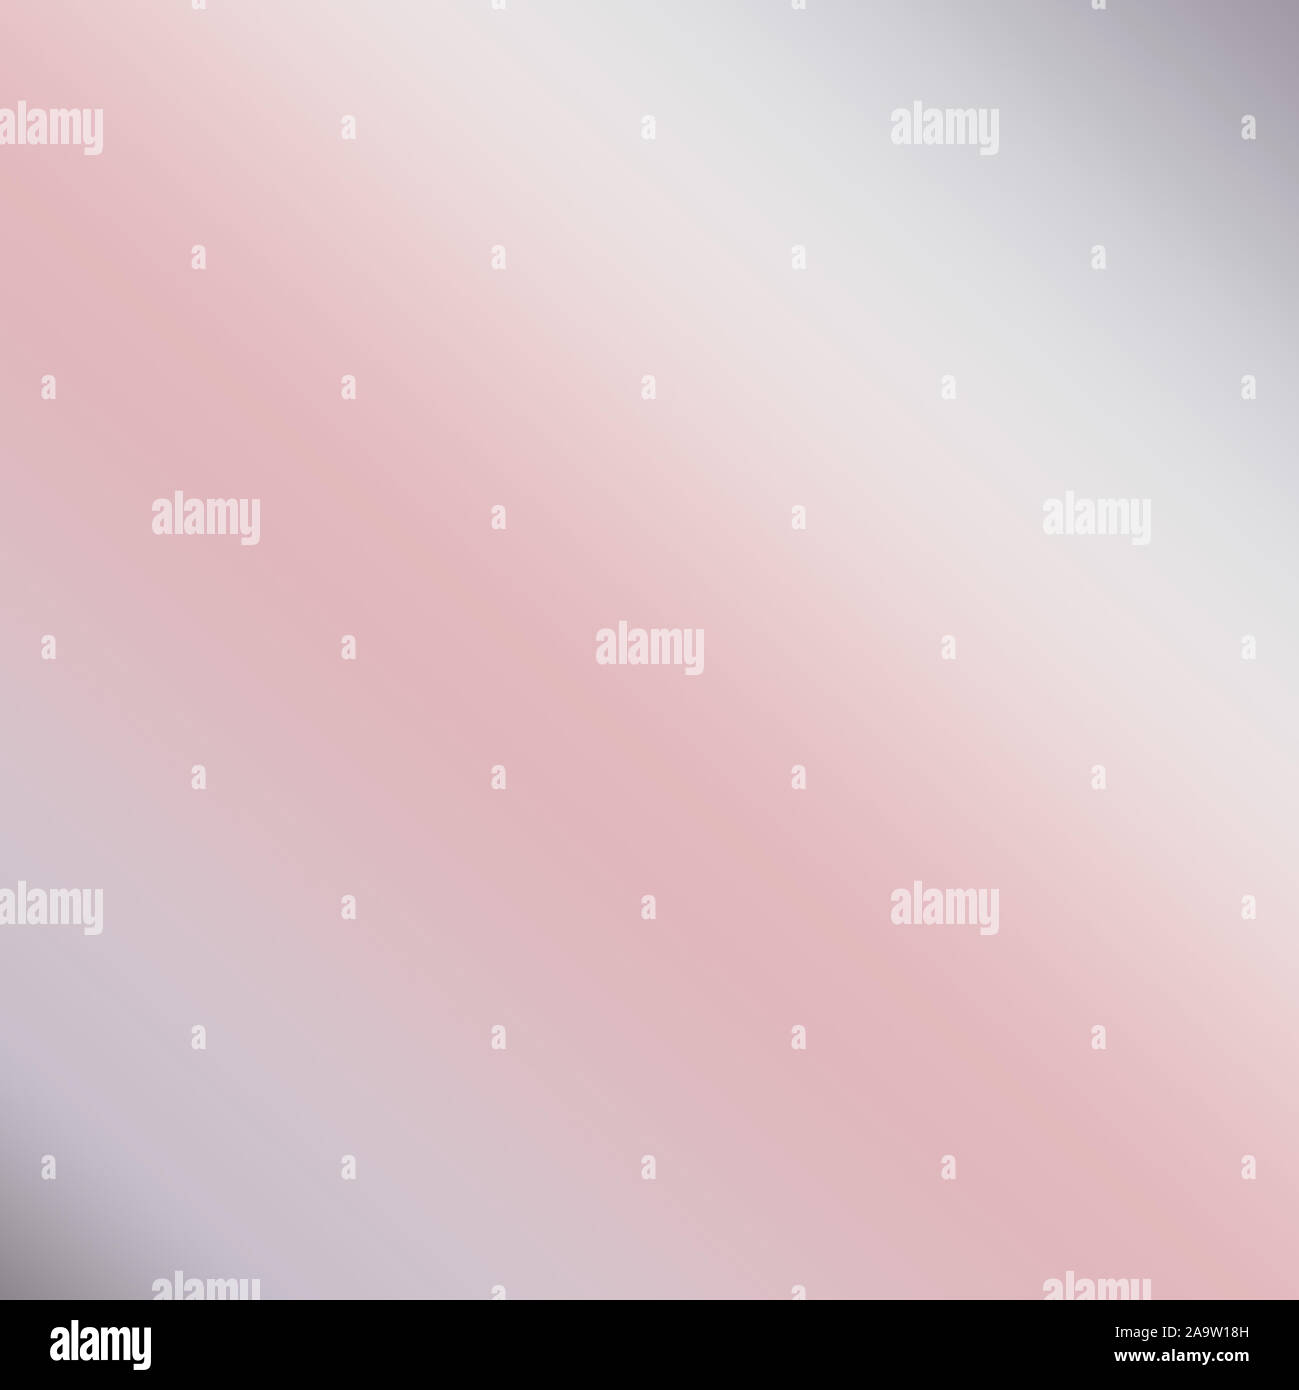 Soft warm pastel colors blur background in this abstract pattern for graphic design projects or 12x12 digital paper needs. Stock Photo